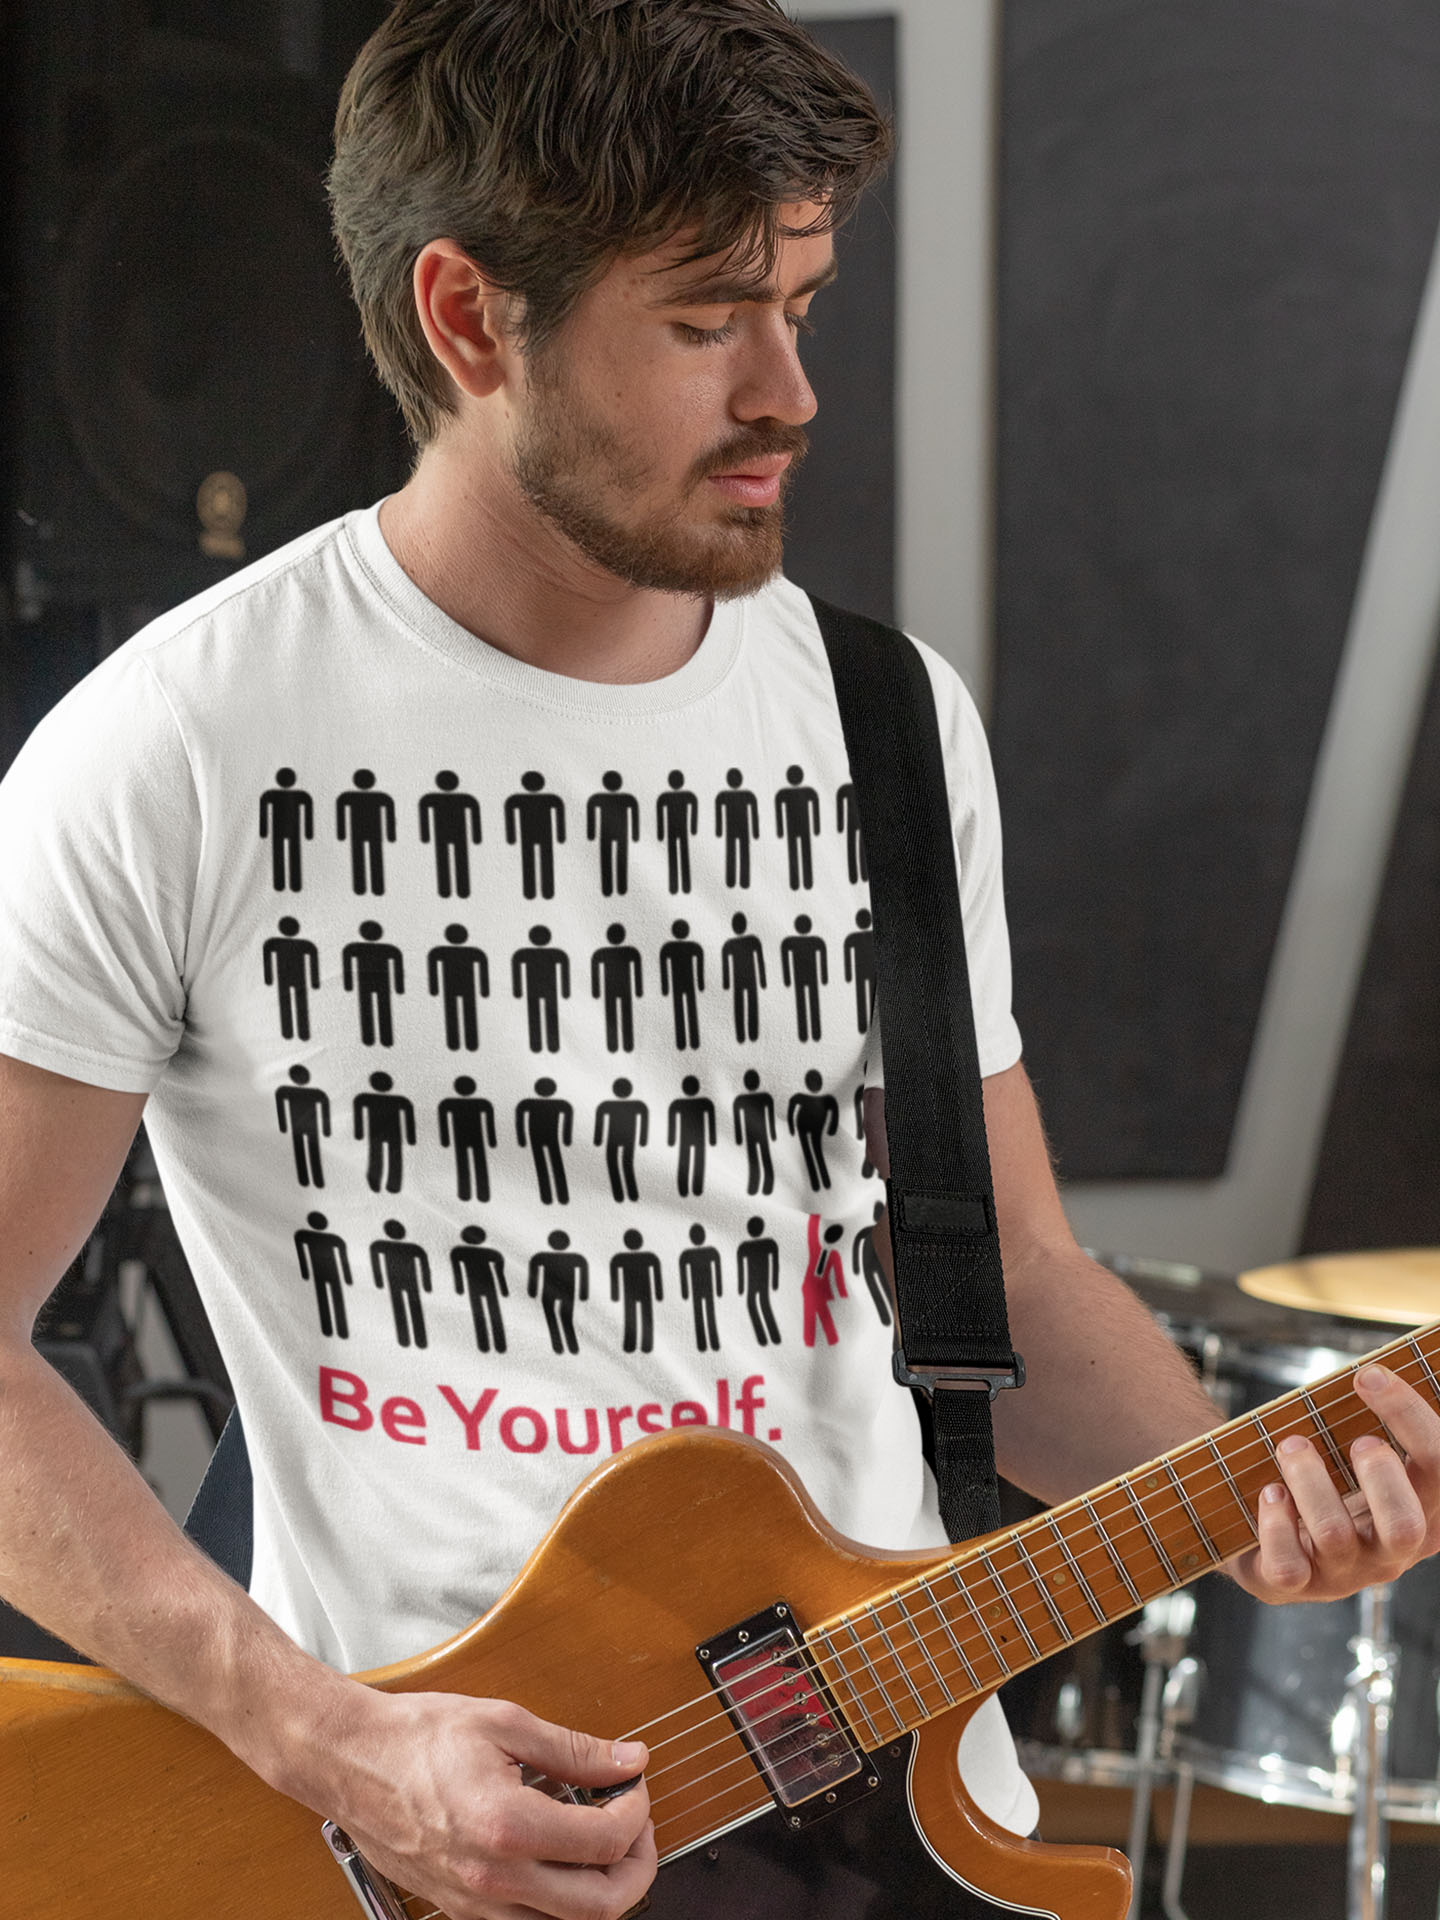 Spredshirt-Prints-Trailfire_0067_t-shirt-mockup-featuring-a-musician-playing-an-electric-guitar-33334